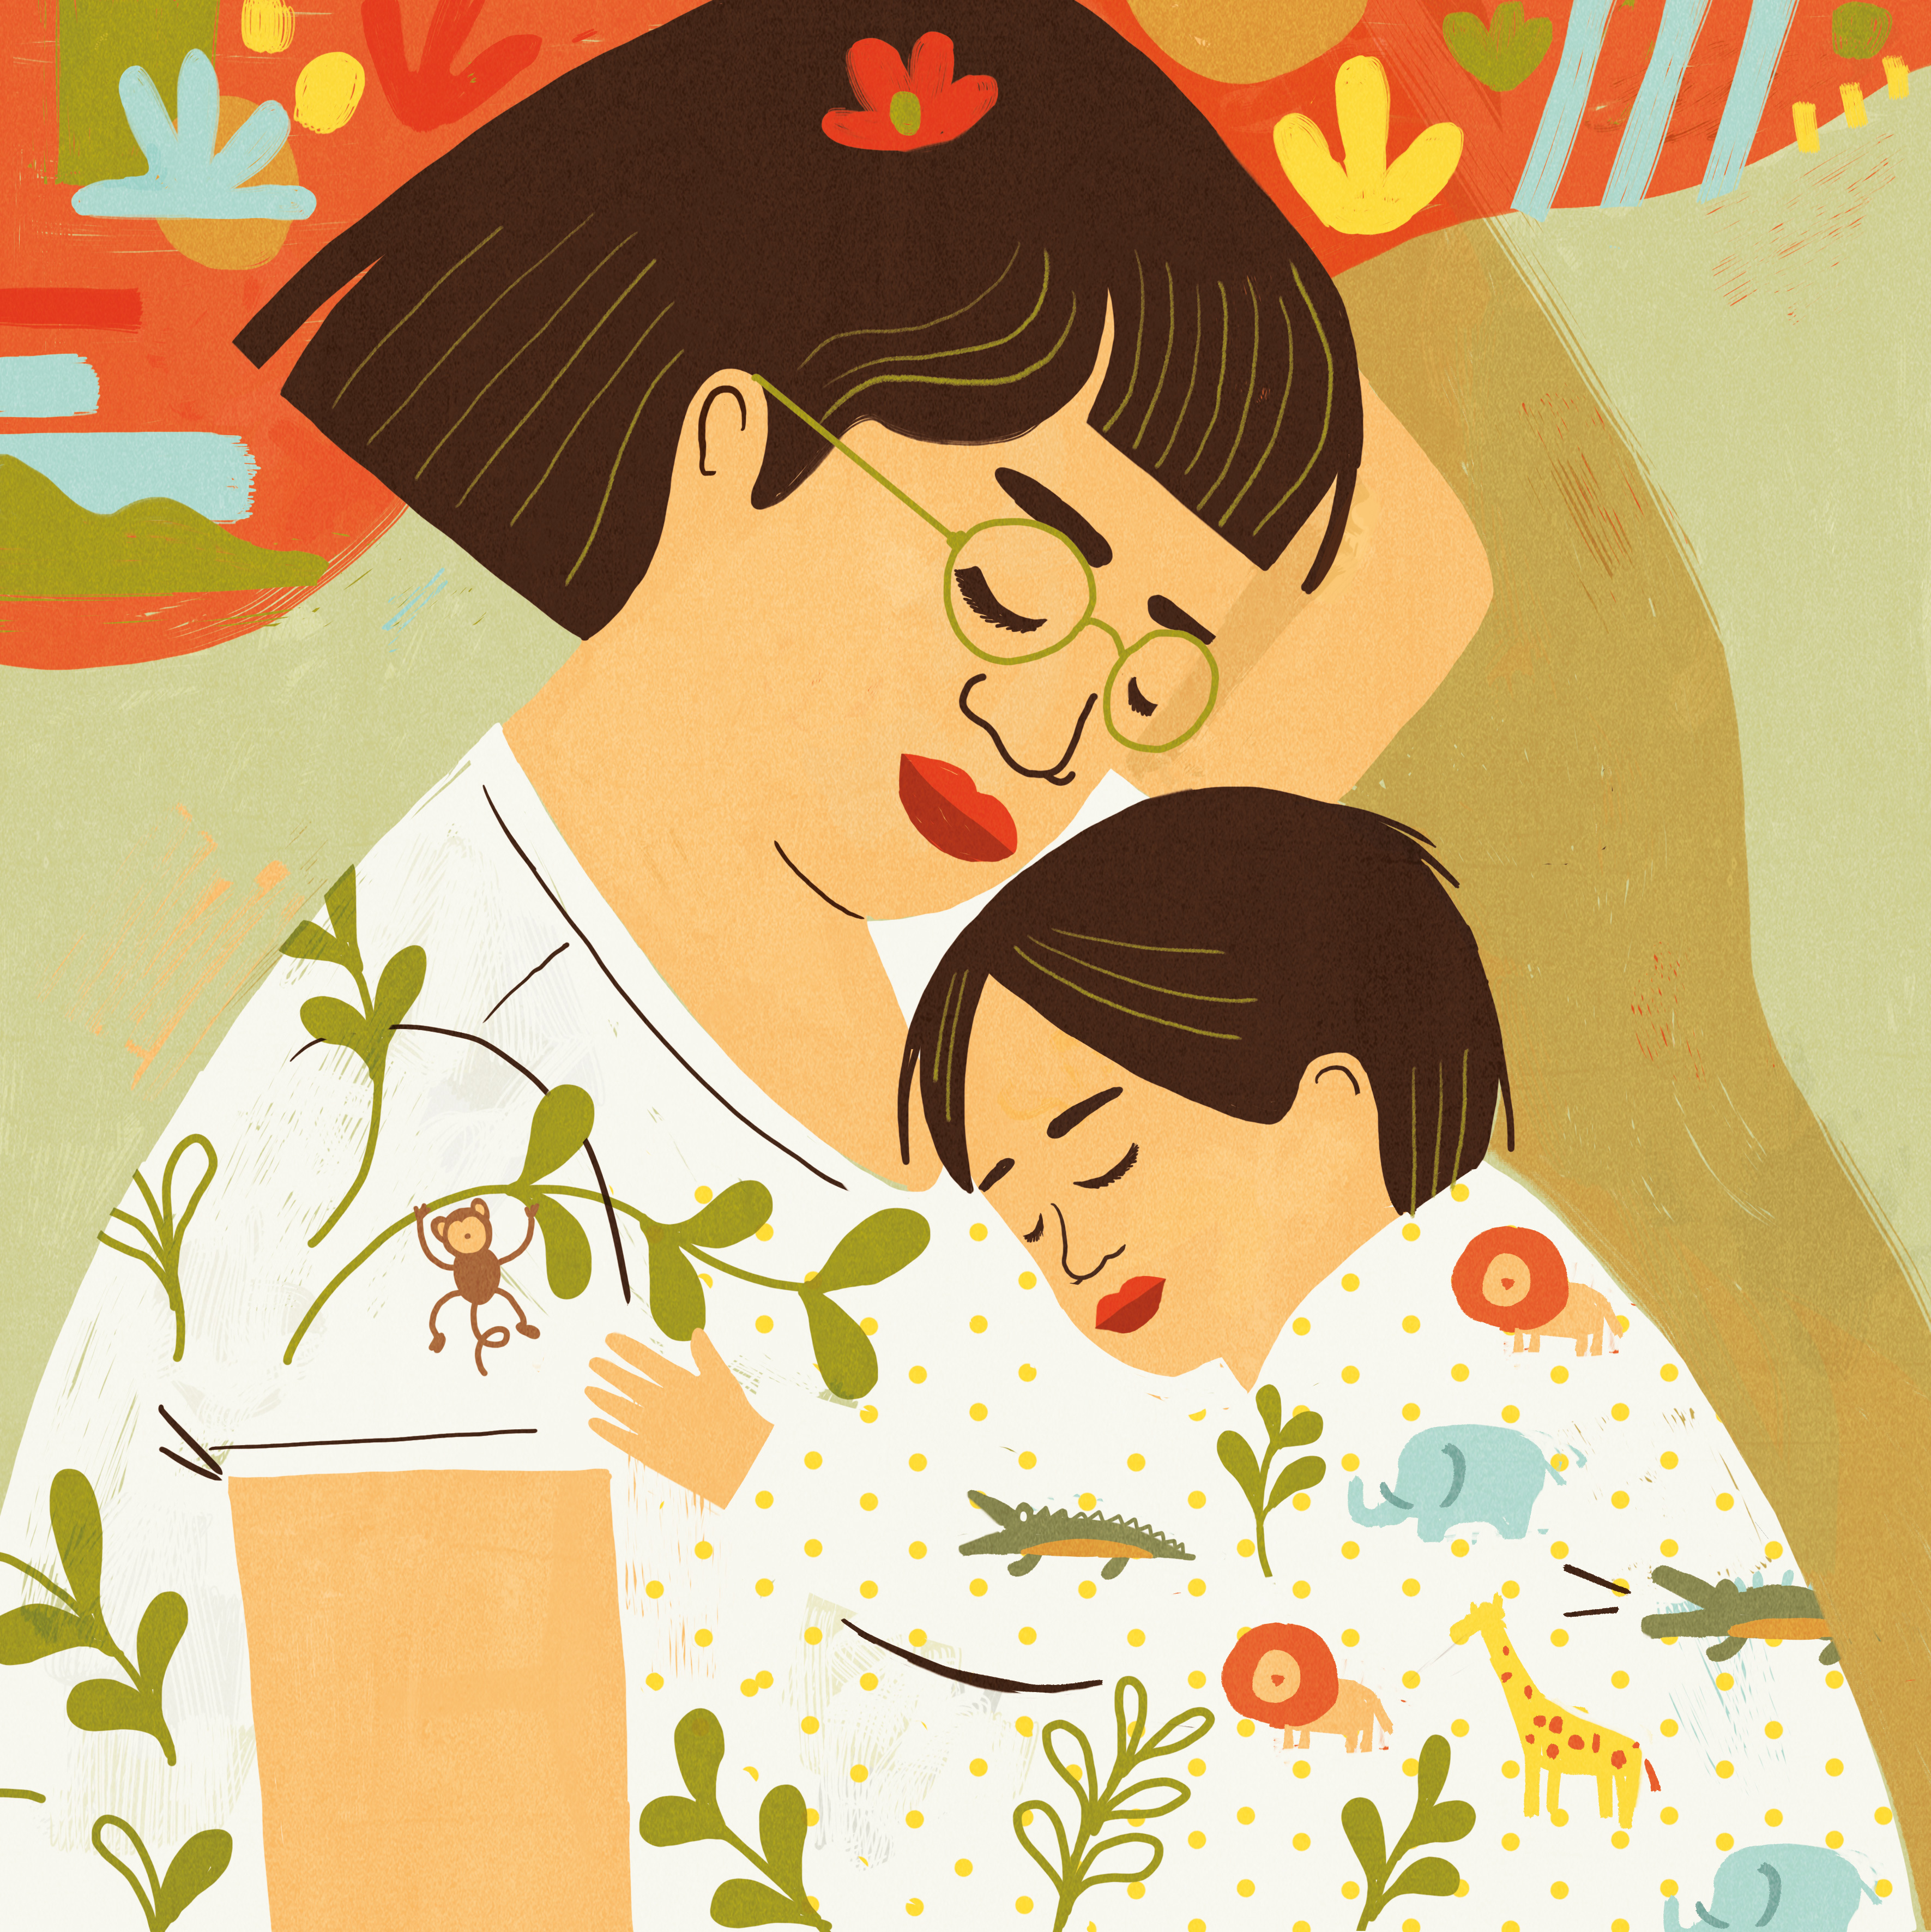 How Dangerous Is It When A Mother Sleeps With Her Baby? : Goats and Soda :  NPR